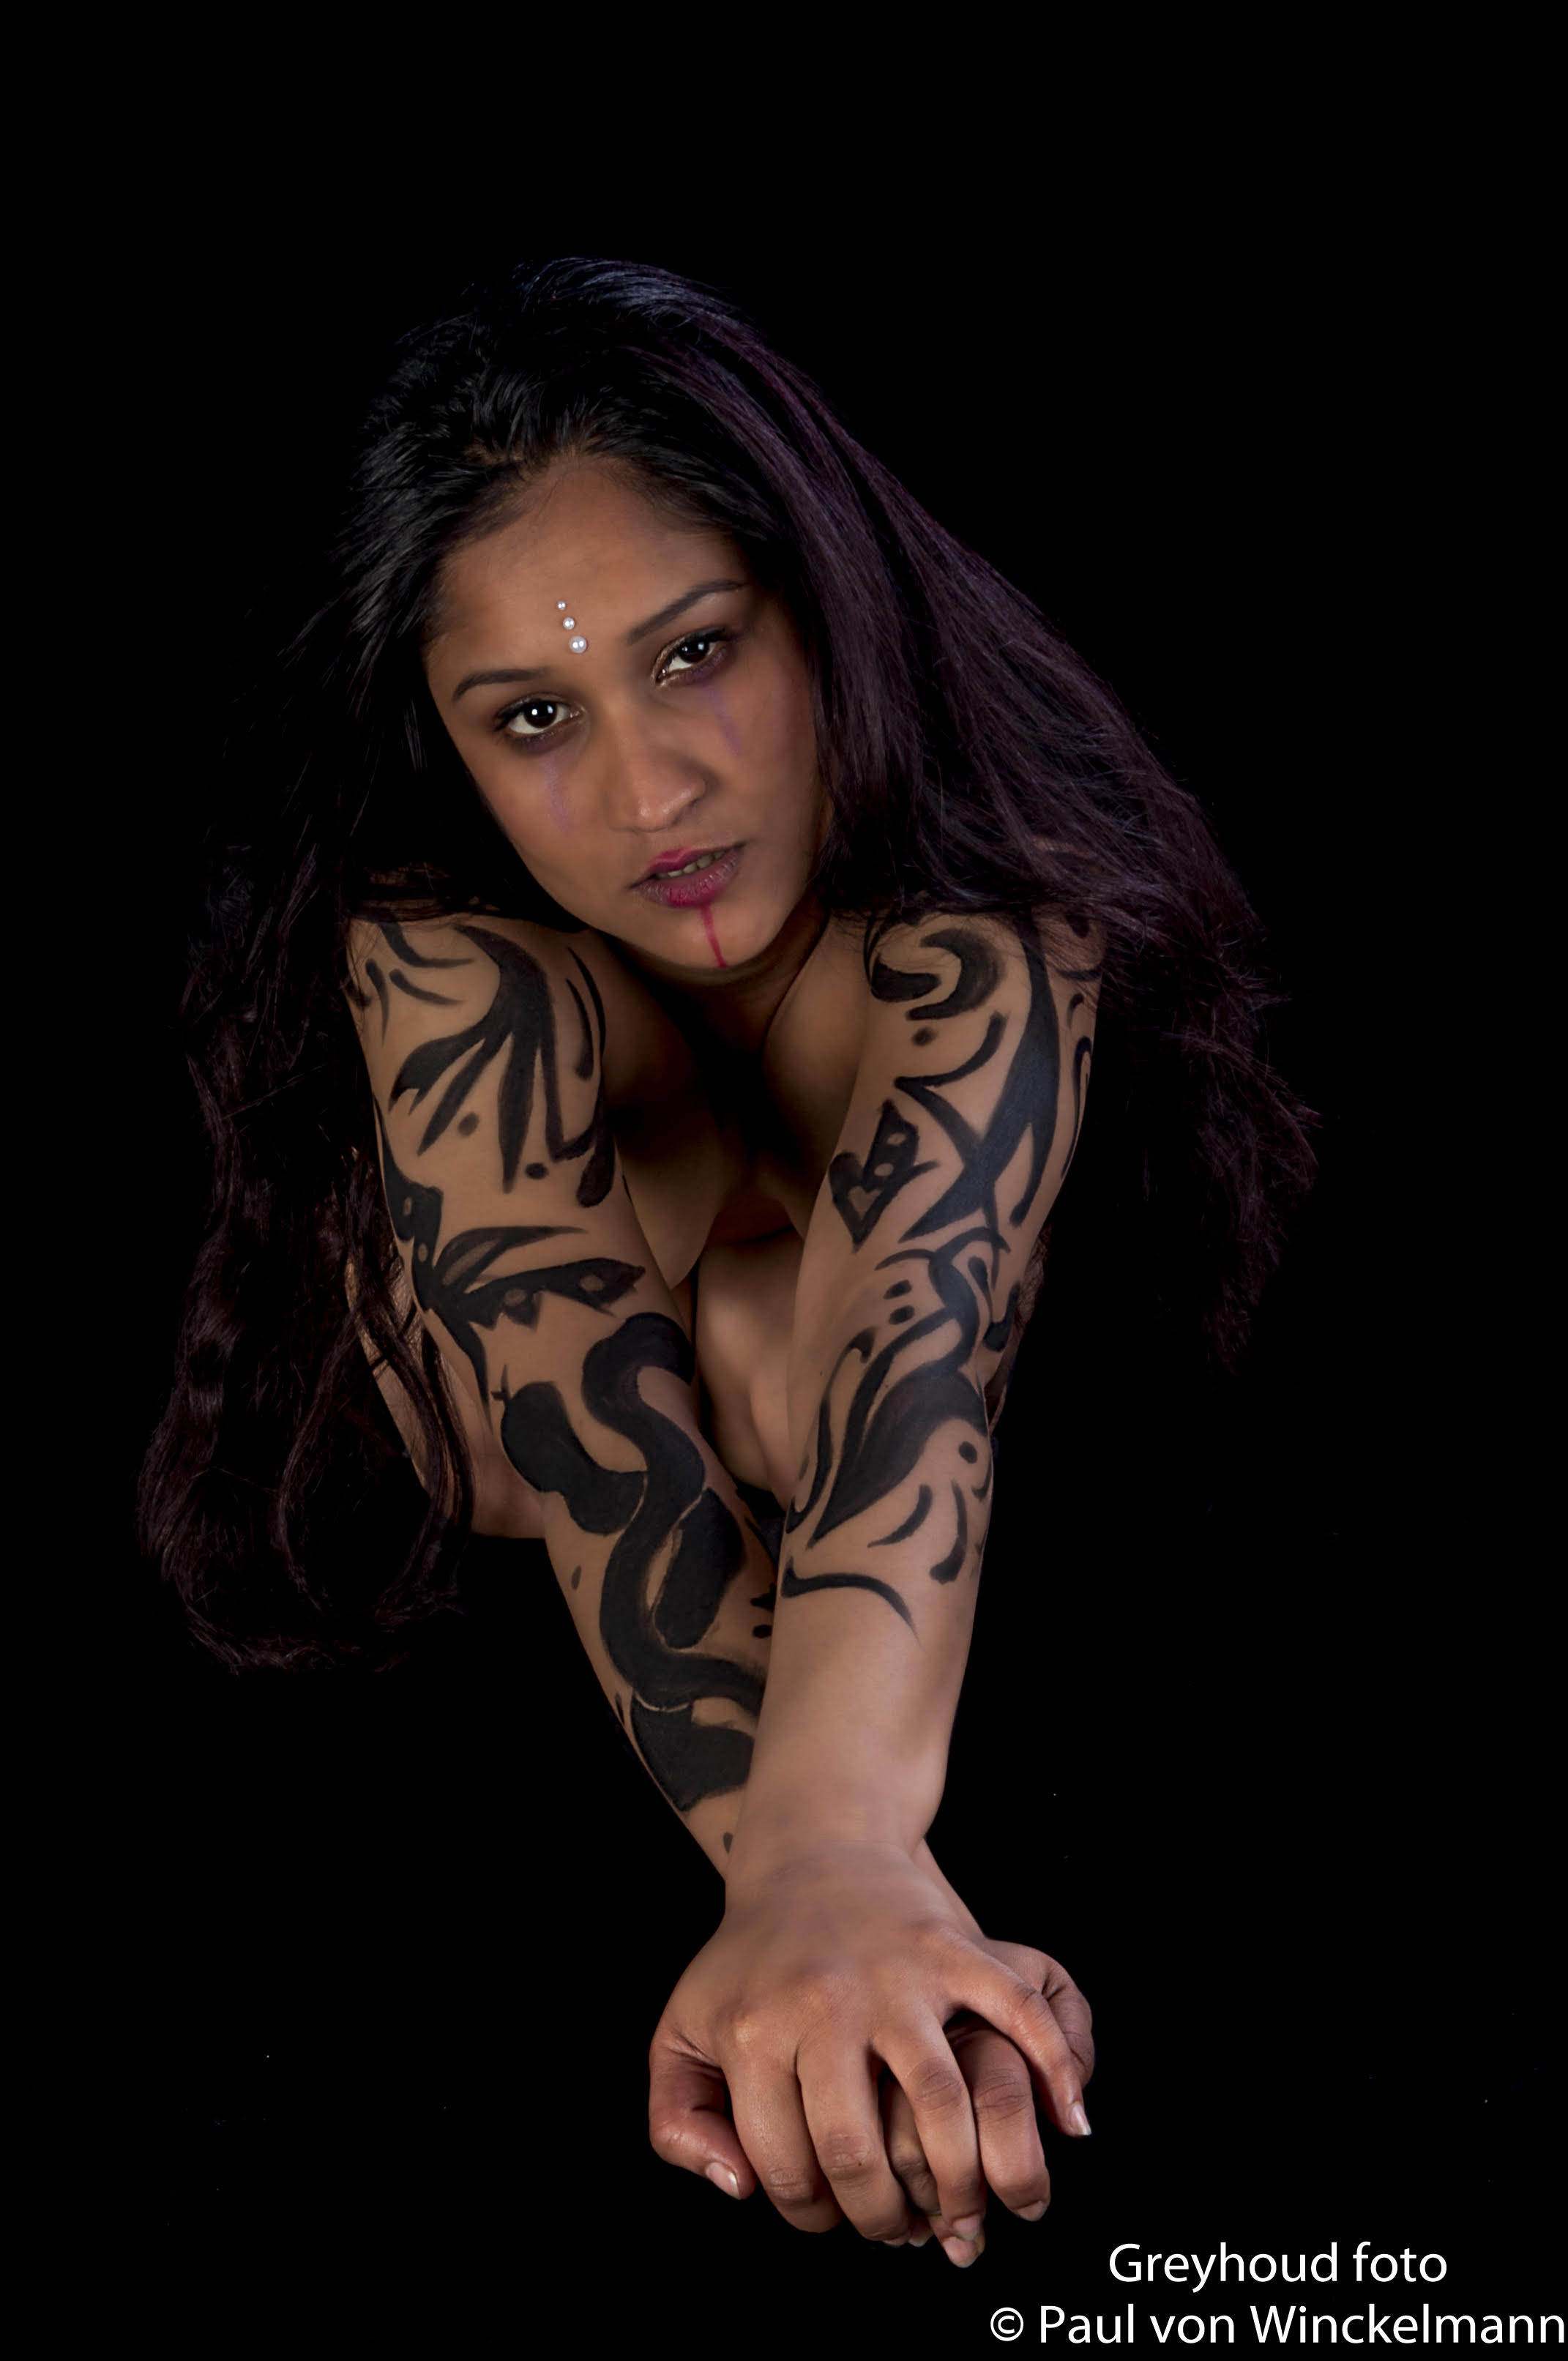 Tribal Tattoo/ Luis Royo Shoot 2016